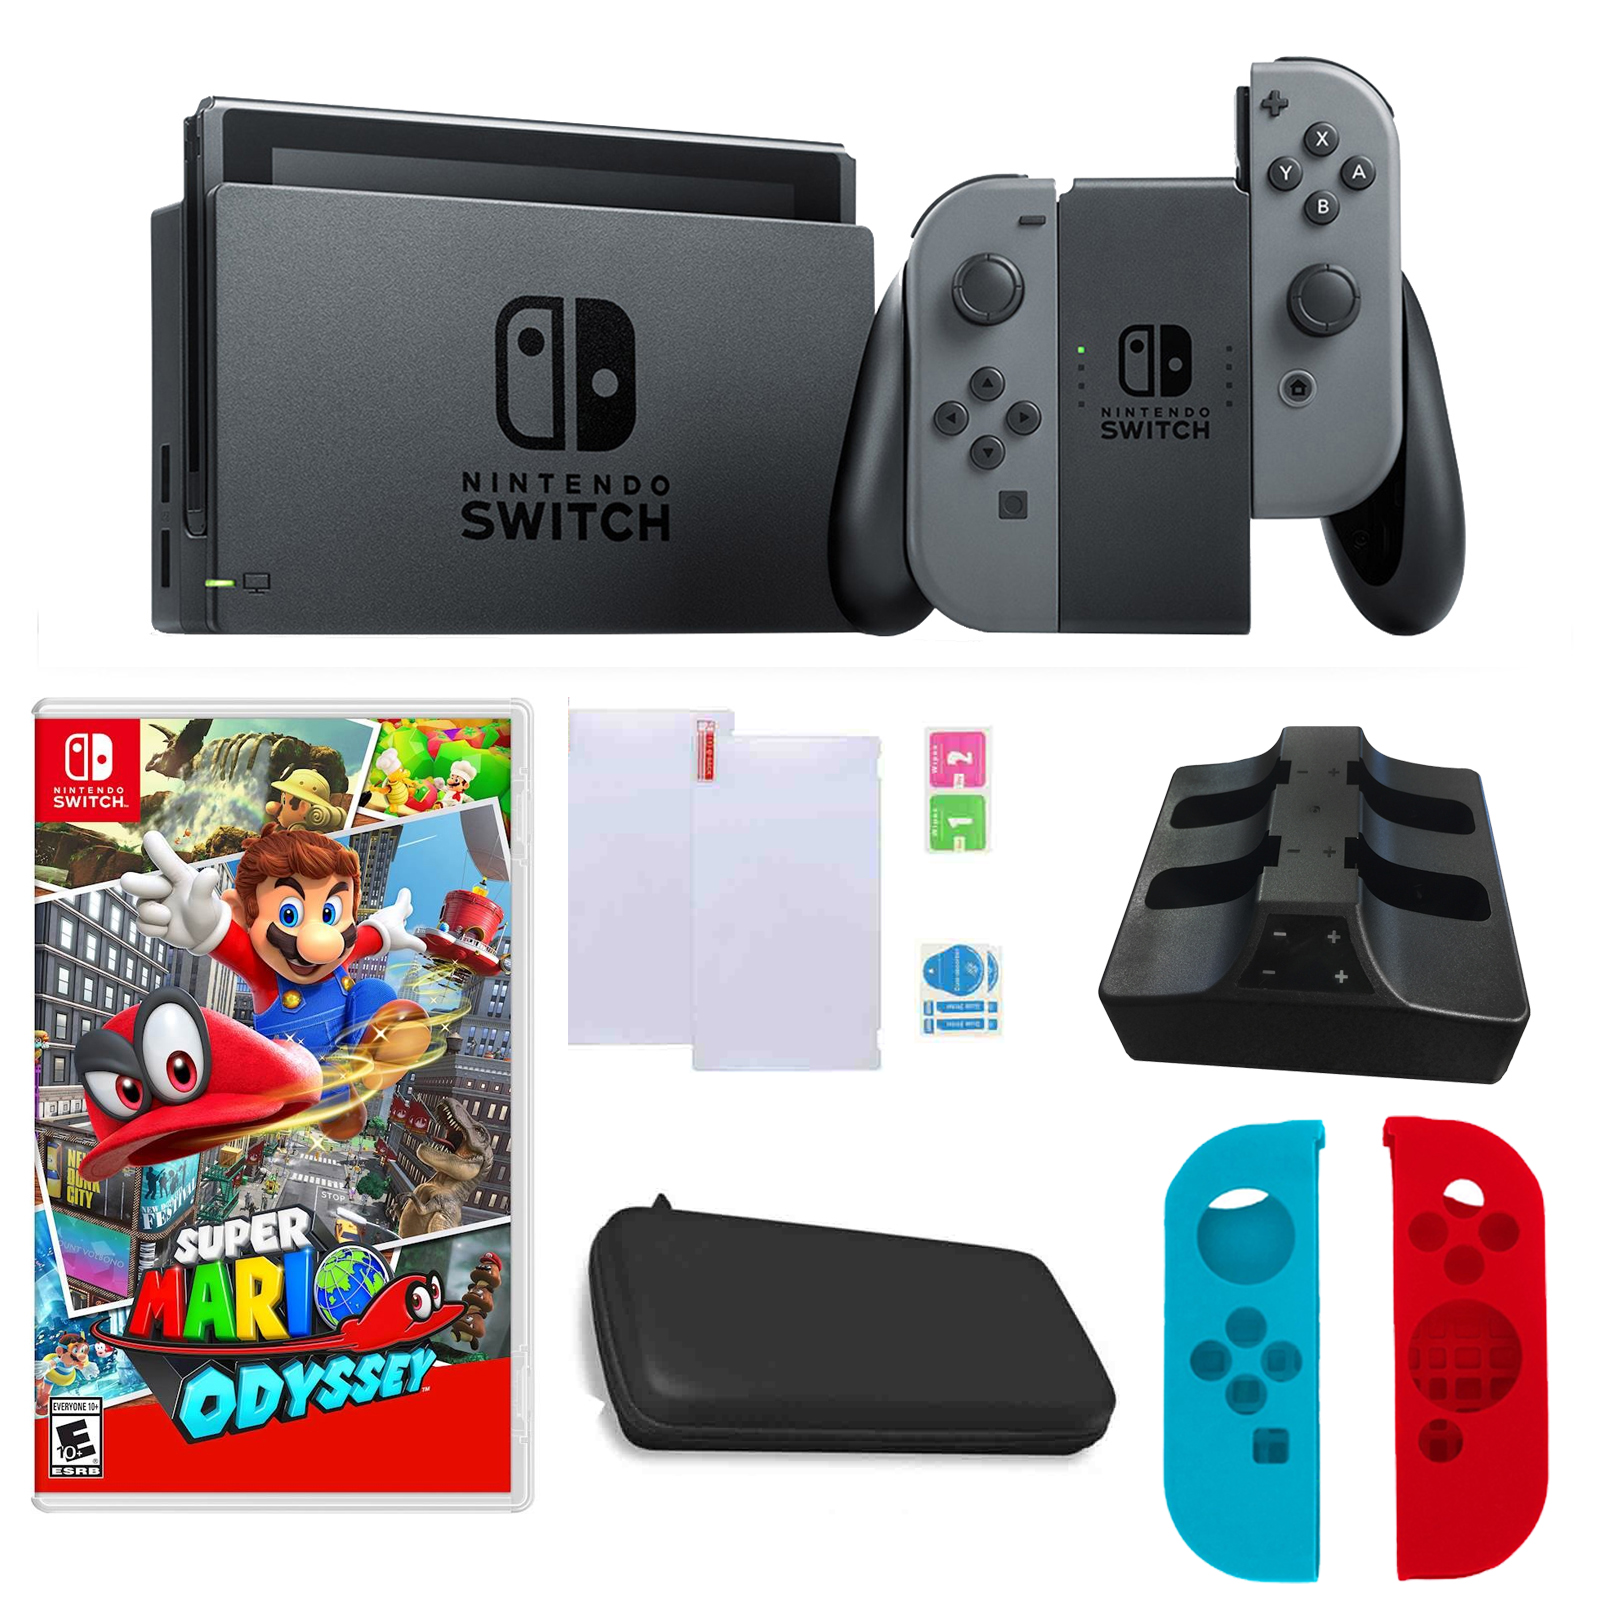 Nintendo Switch in Gray with Mario Odyssey Game and Accessories Bundle